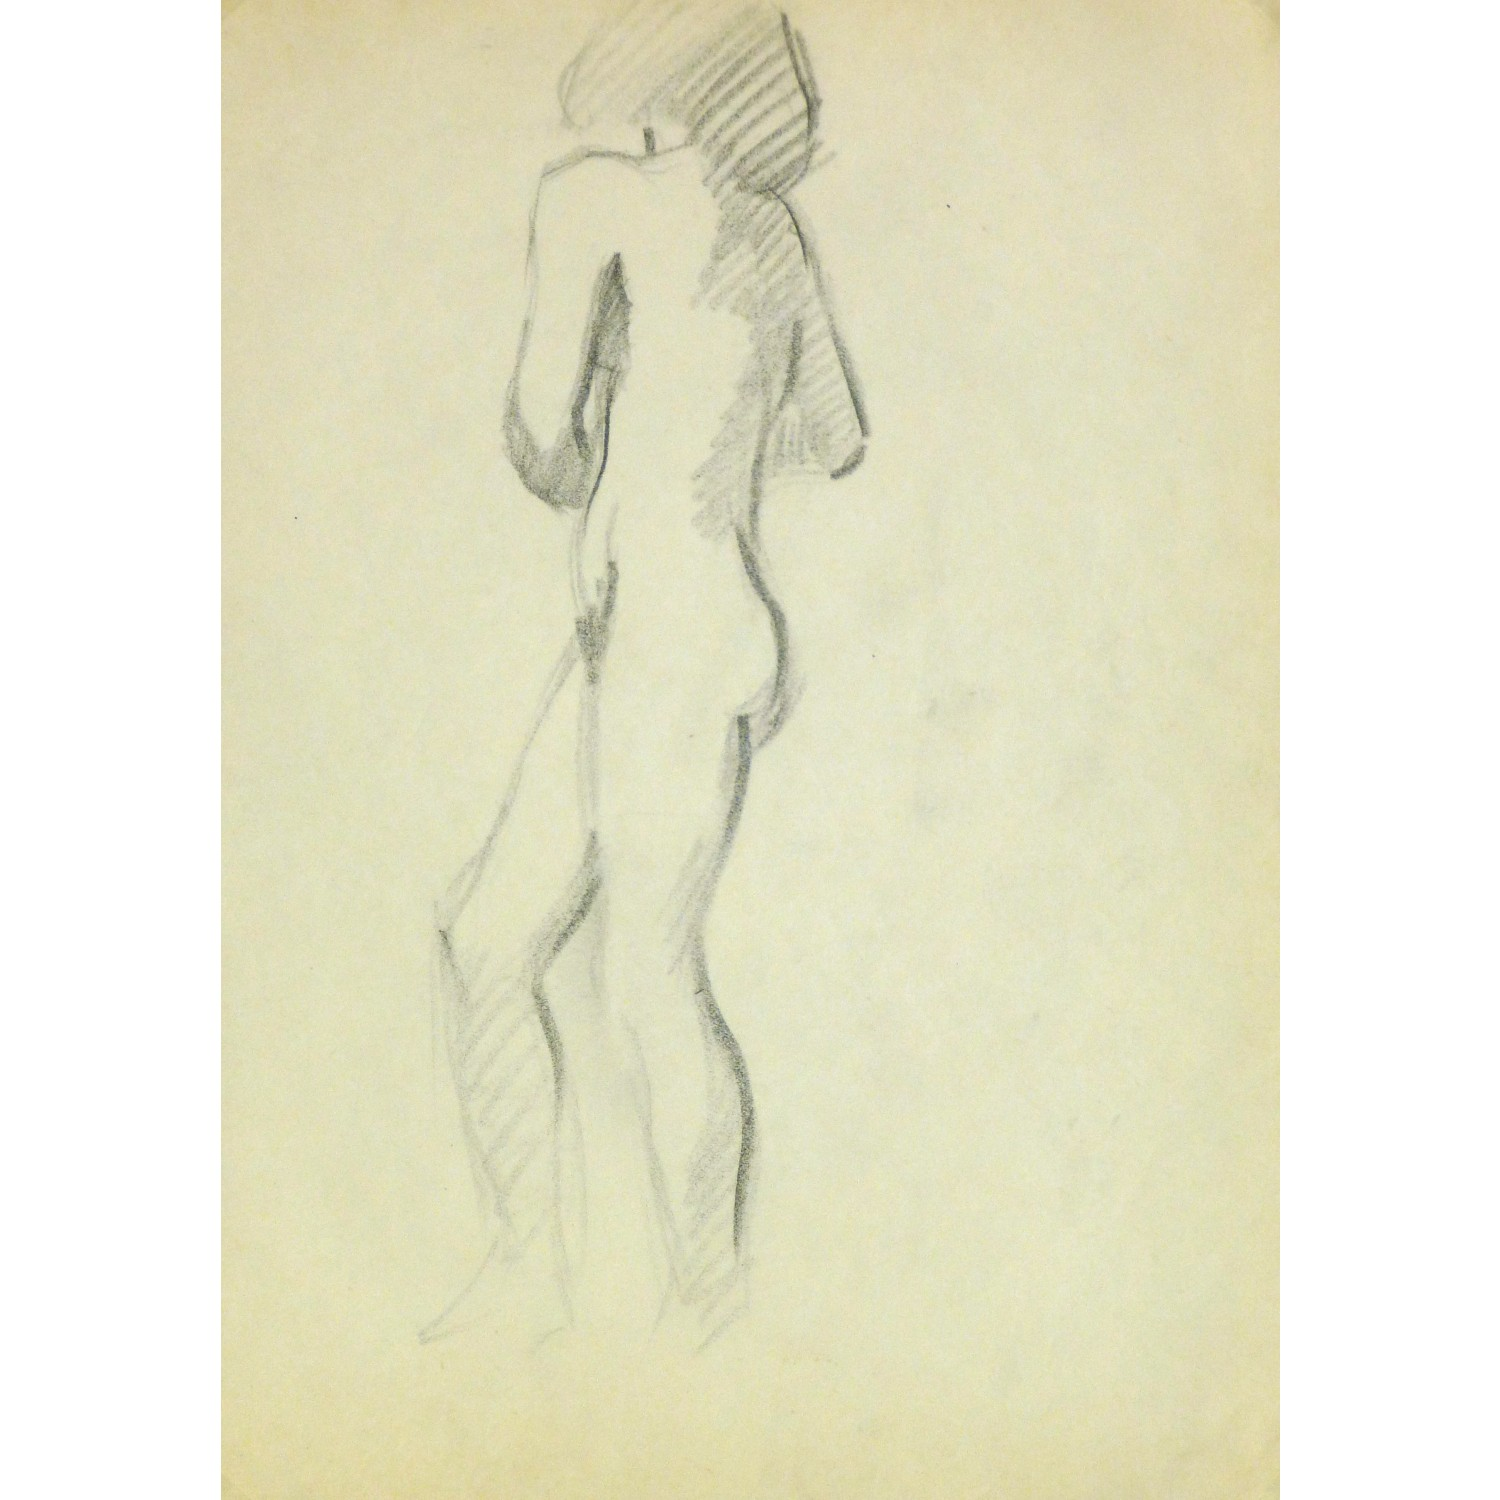 Vintage Pencil Drawing of Female Nude by Jean Ernst 9298